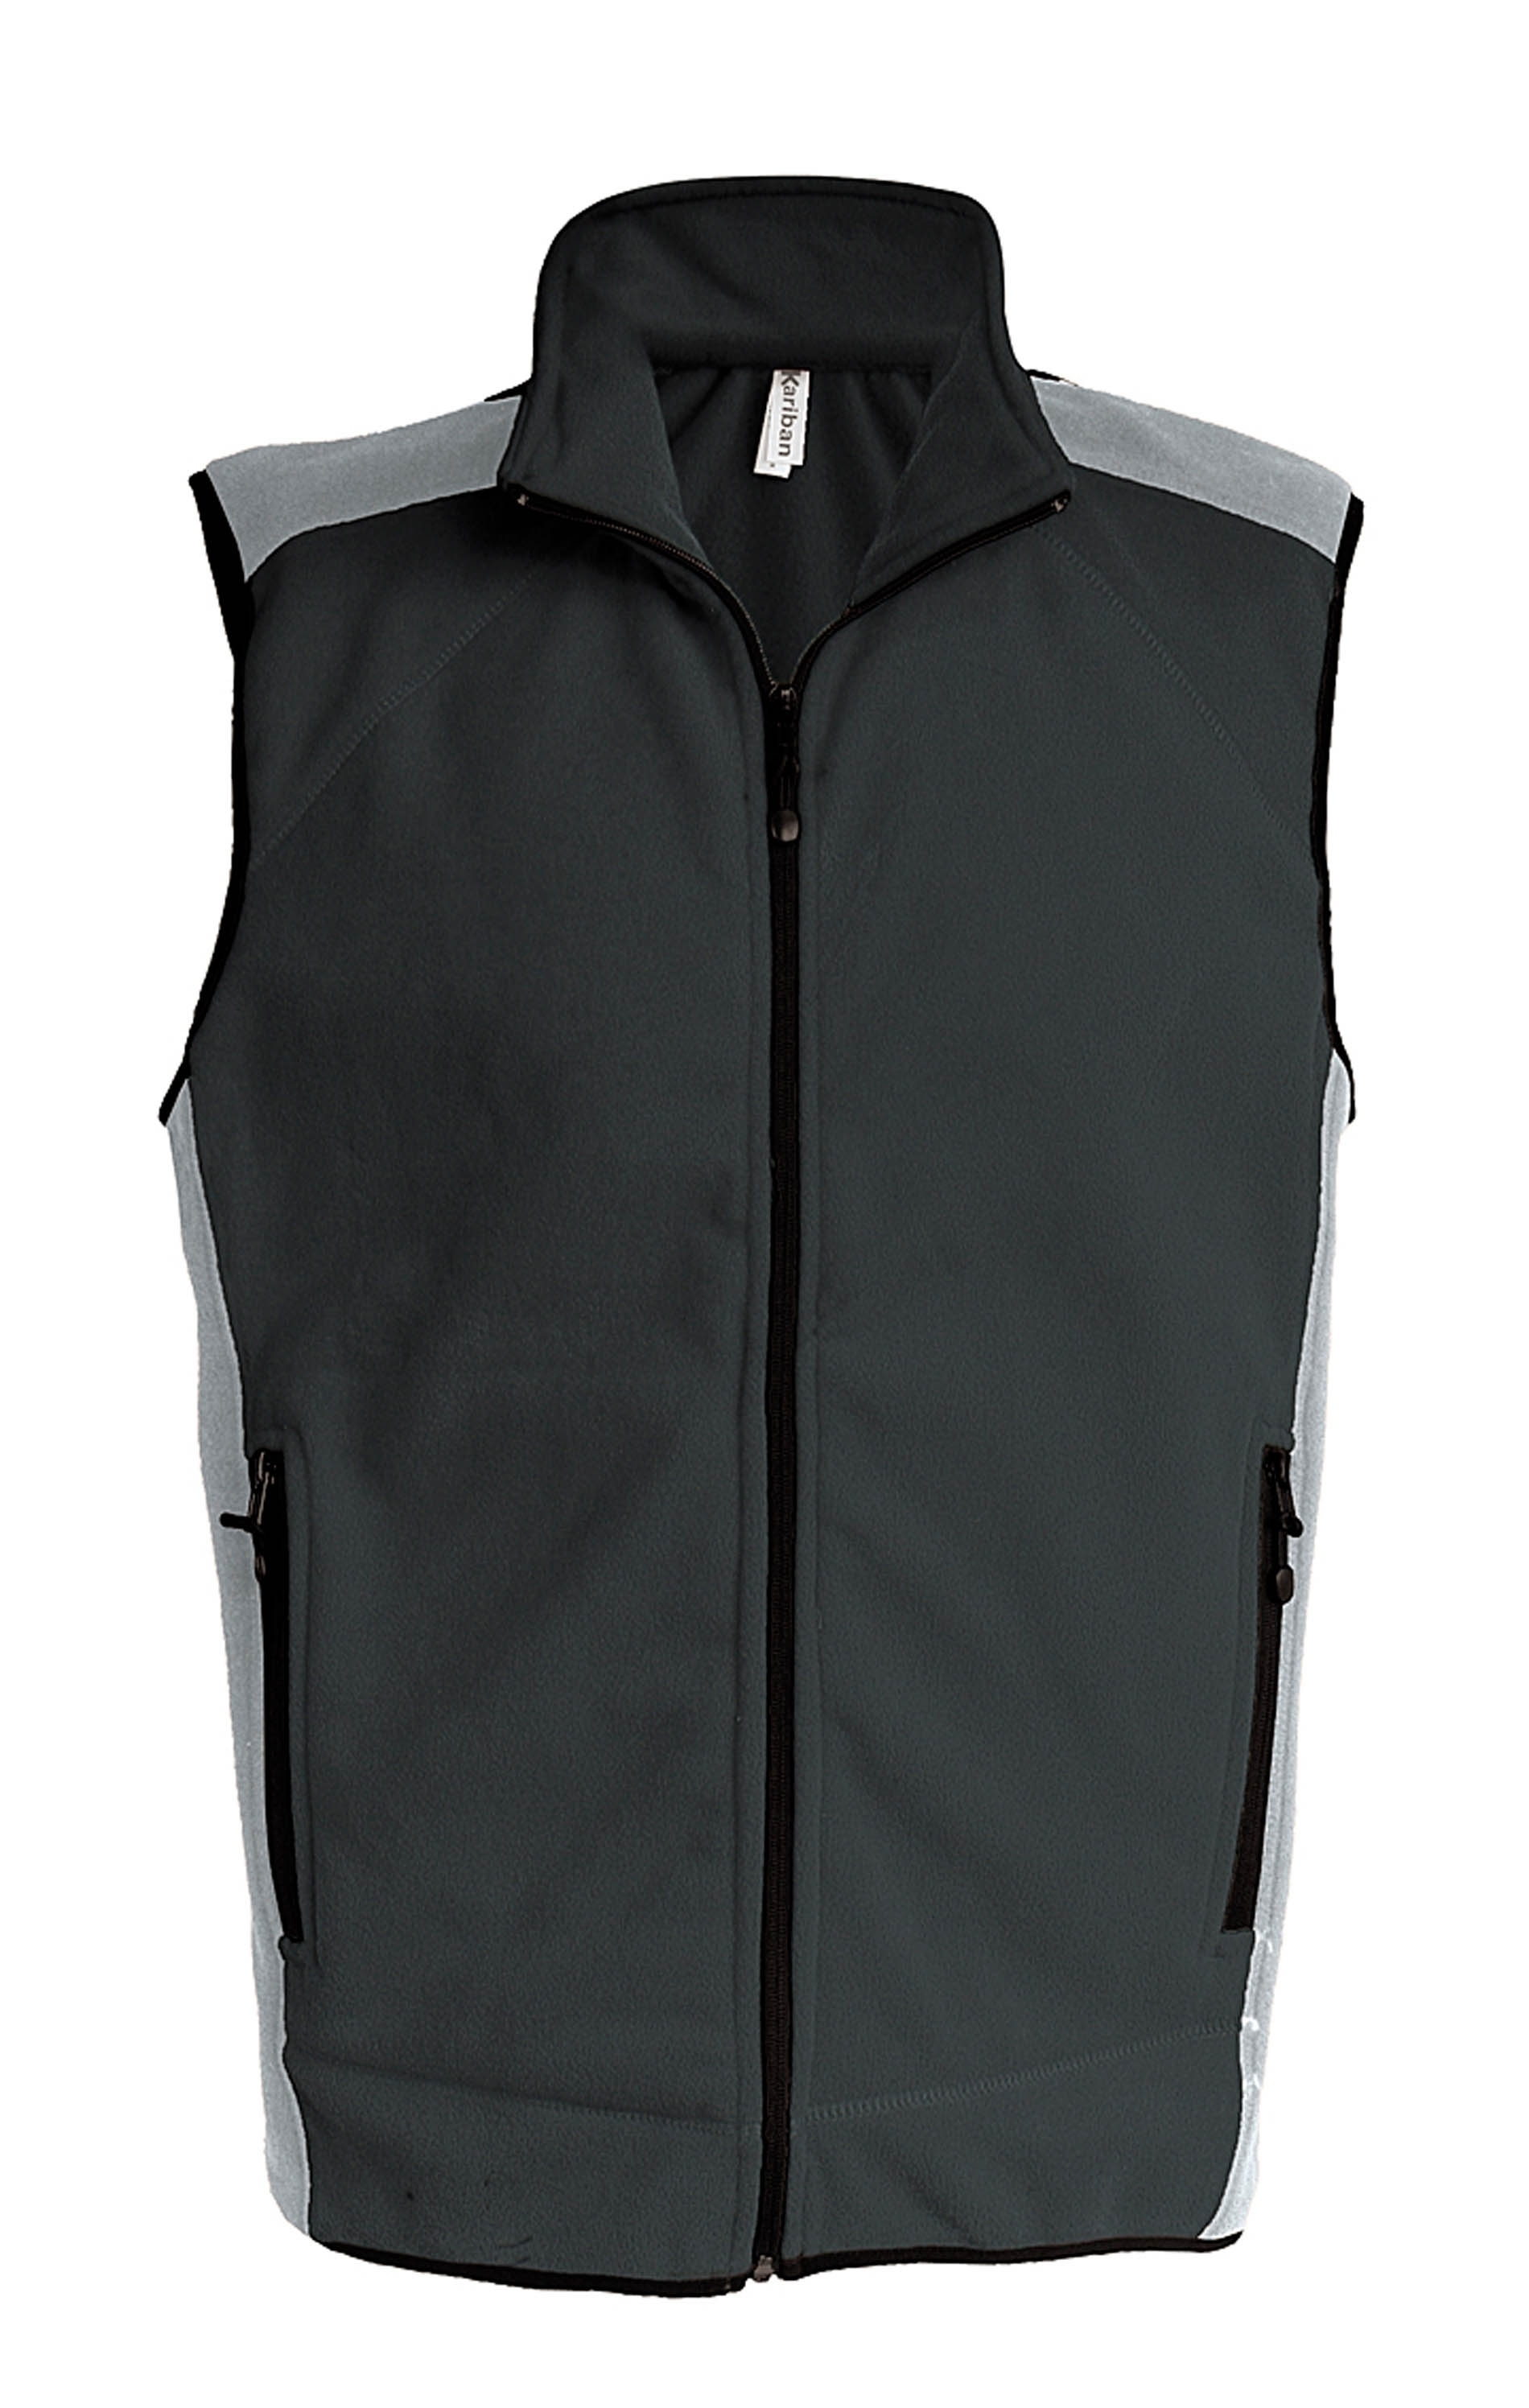 DIVO_ Gilet micropolaire bicolore Dark Grey / Light Grey Gris